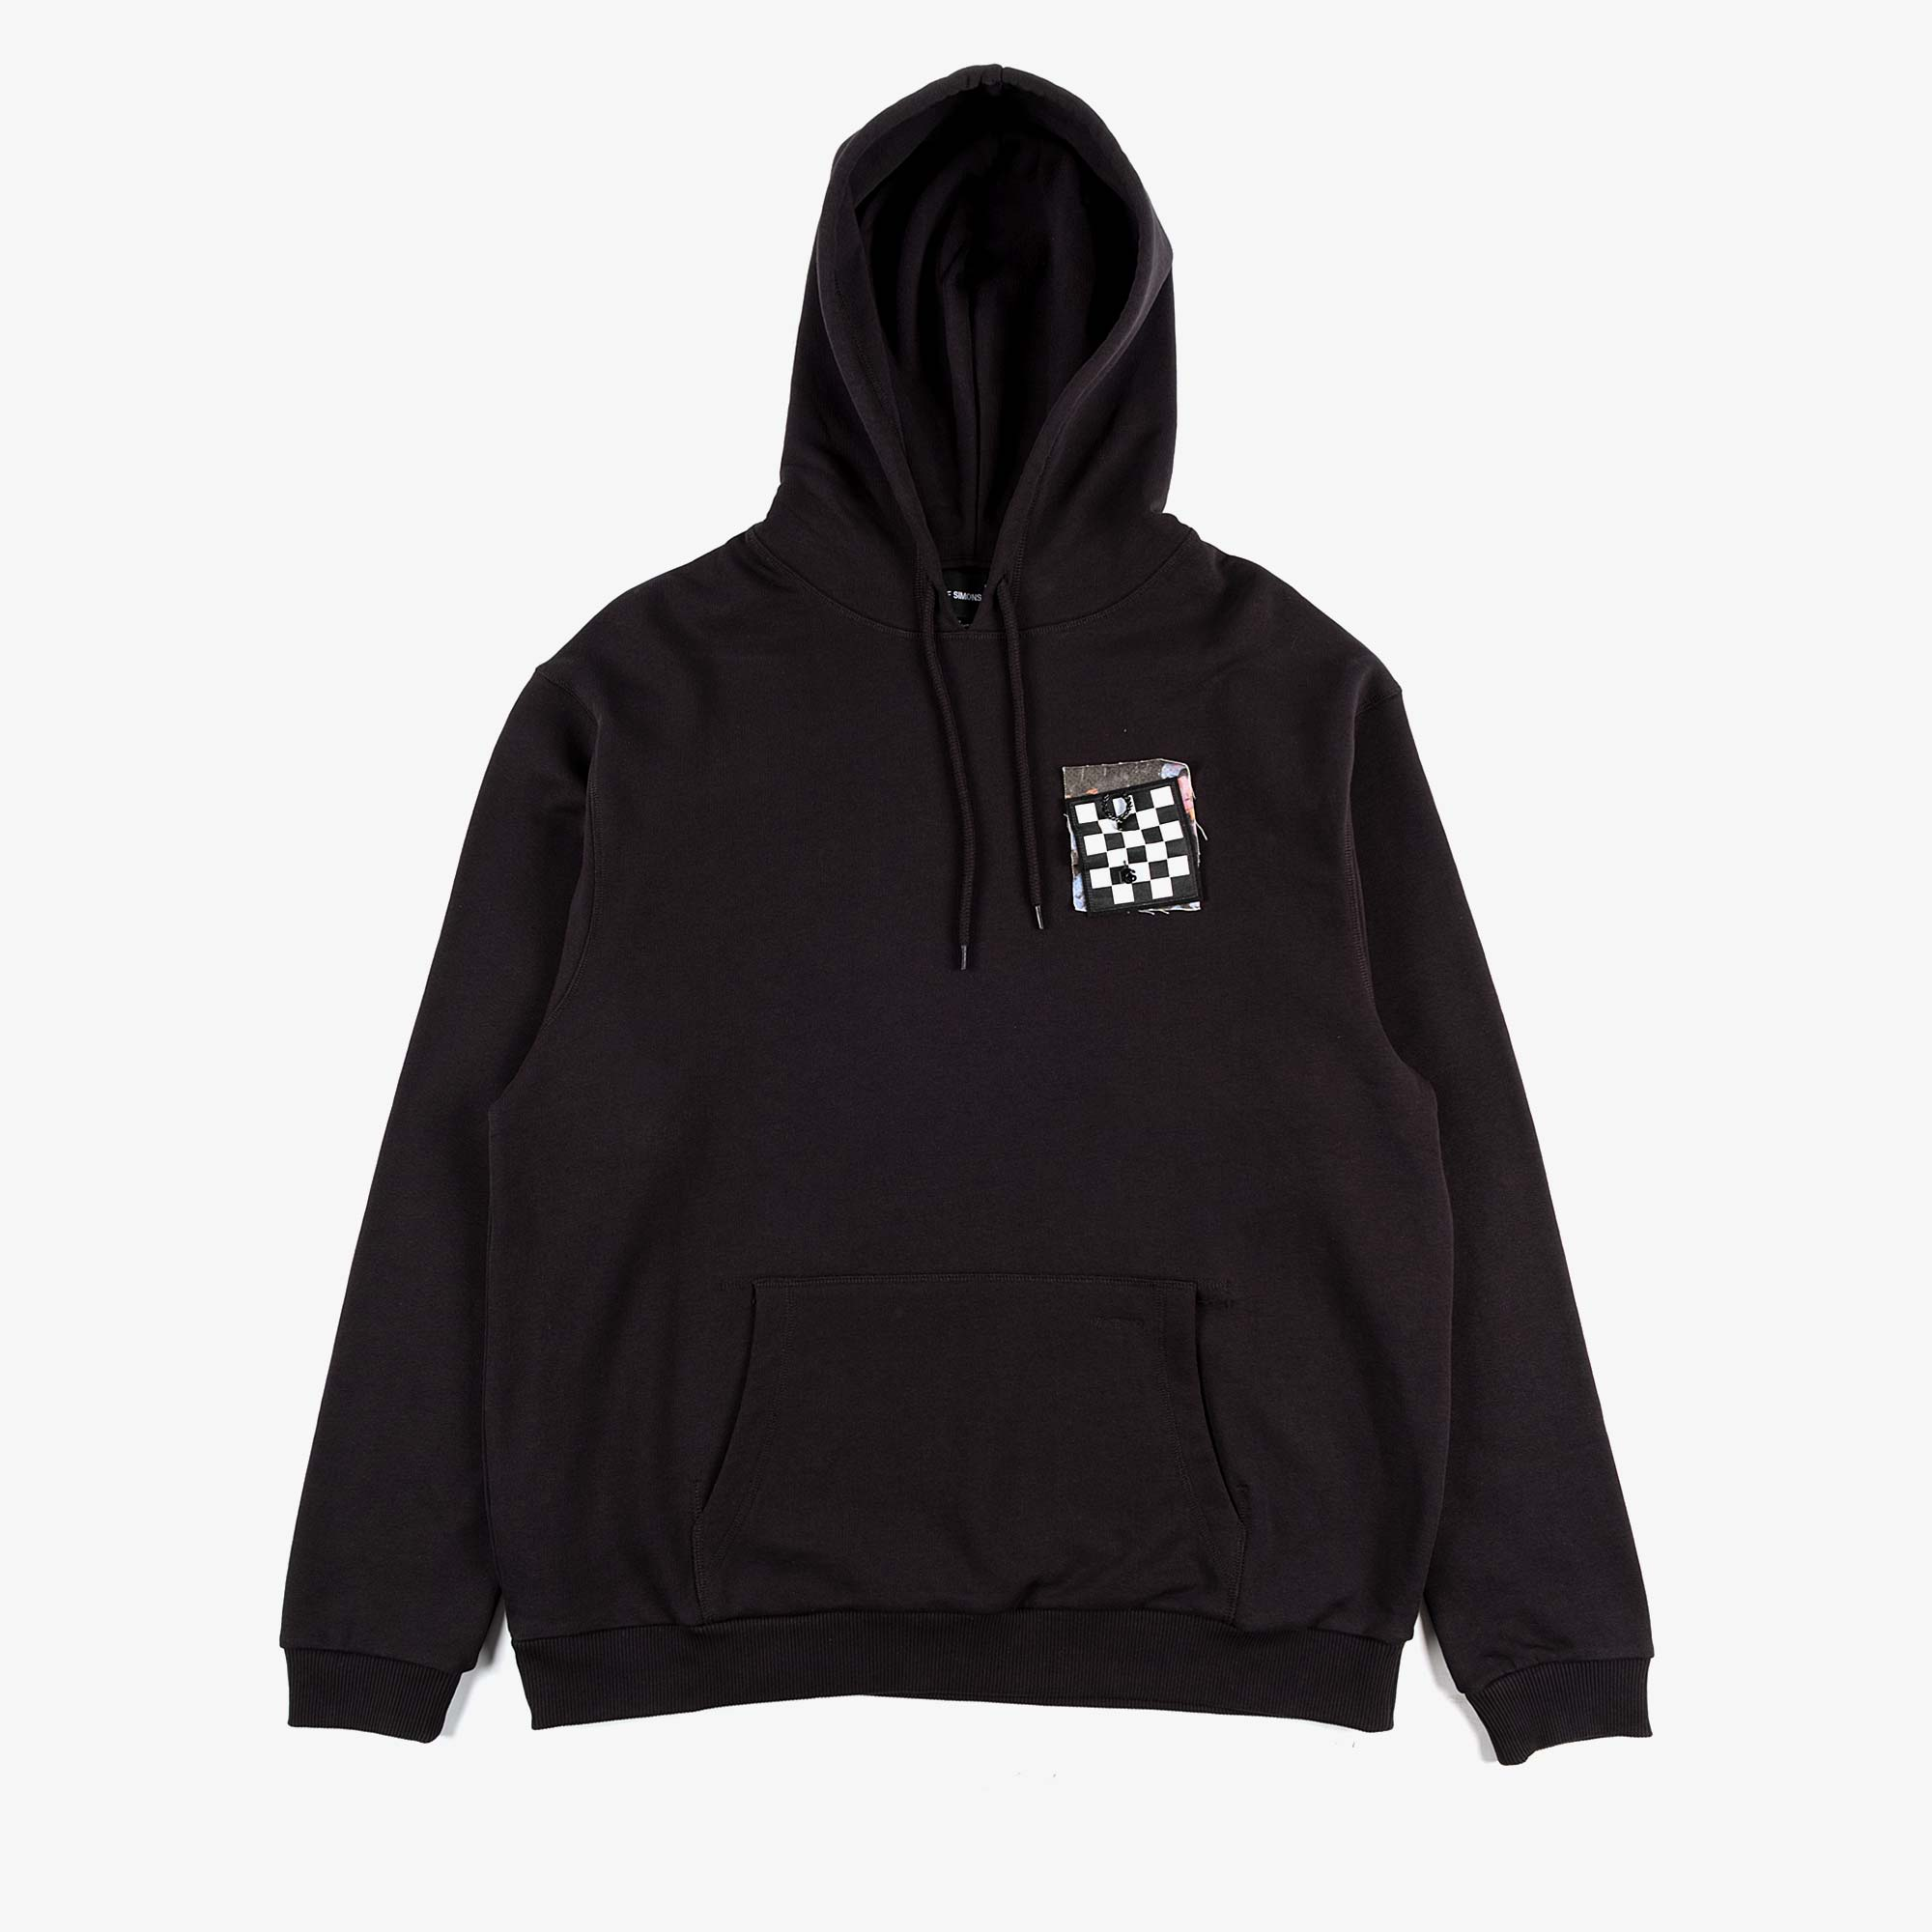 Fred Perry X Raf Simons Pin Detail Printed Patch Hoody - Black 2